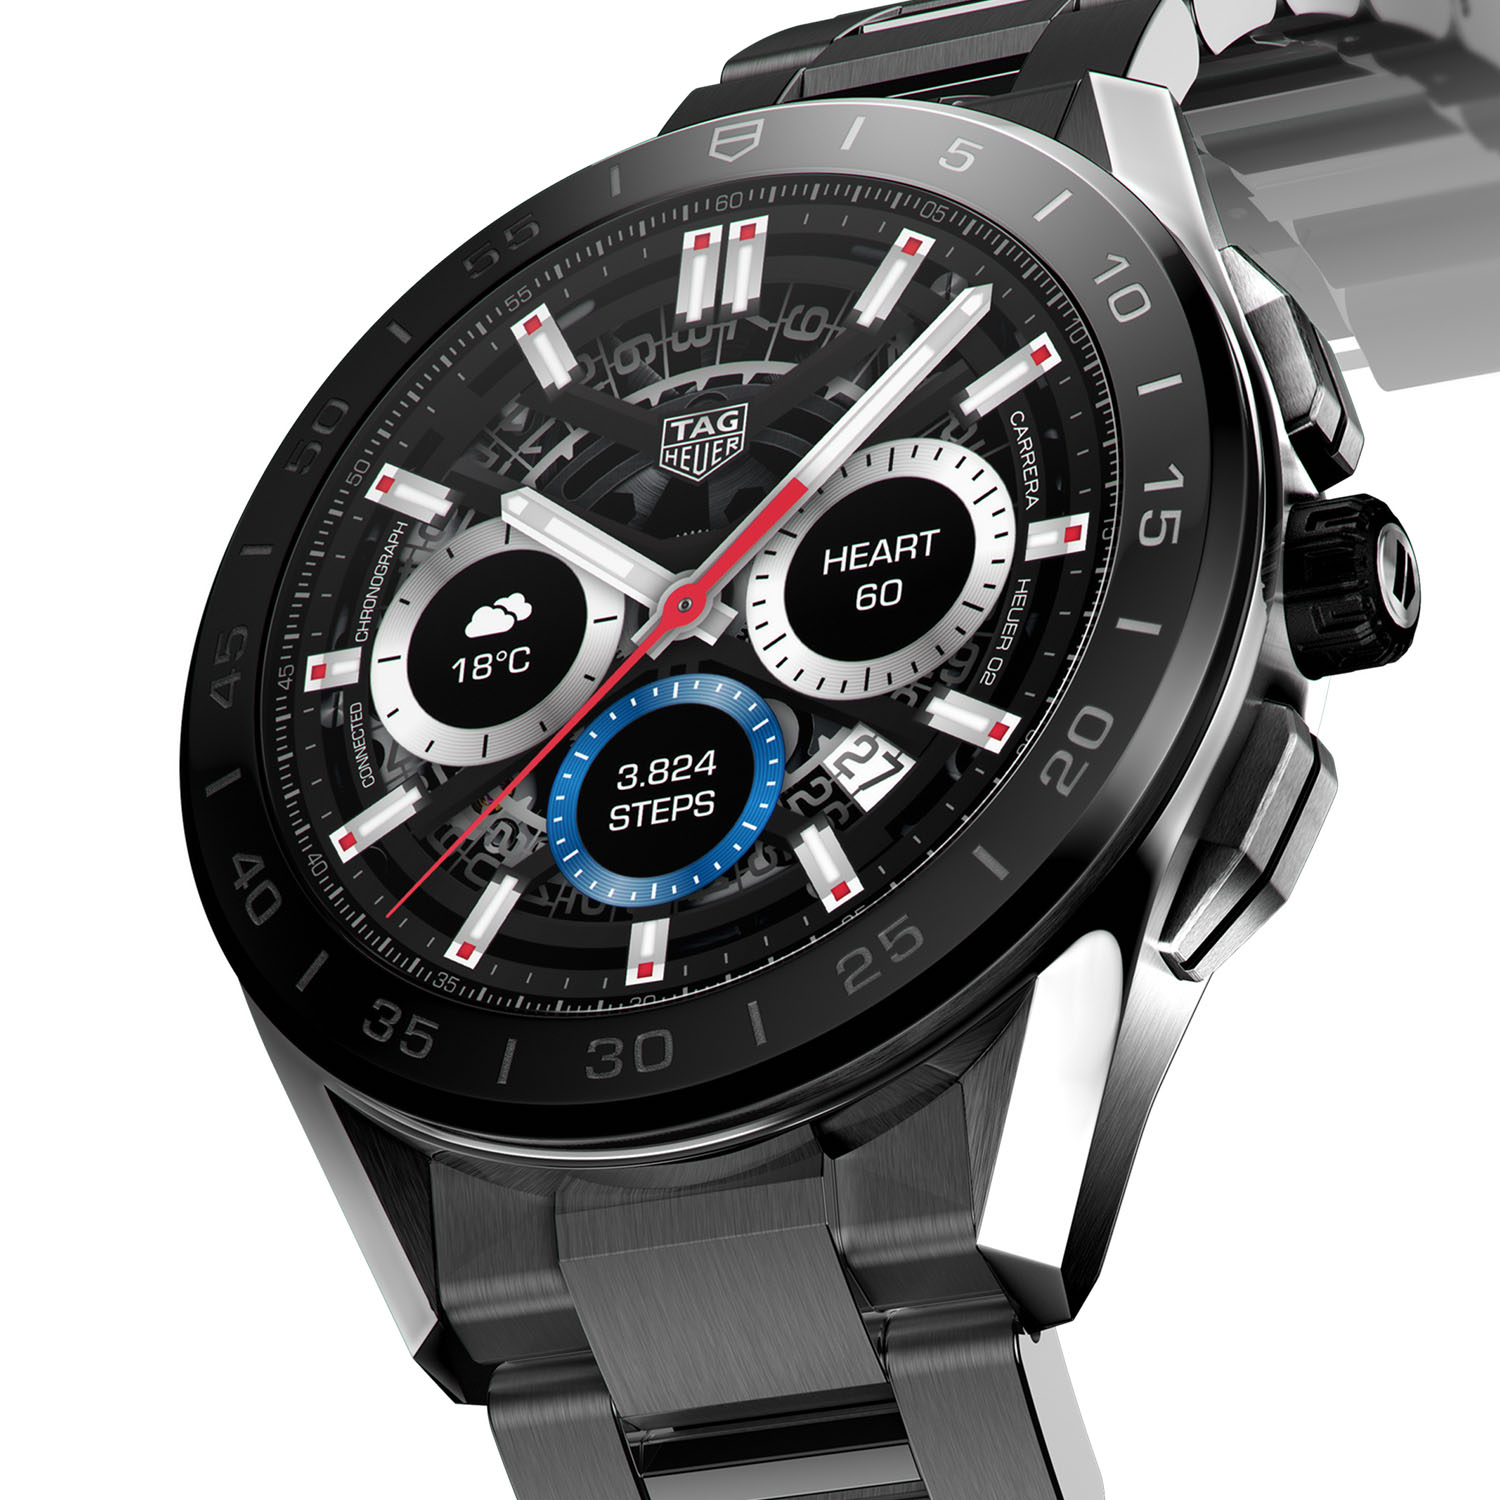 TAG heuer Connected Watch 2020 - 9